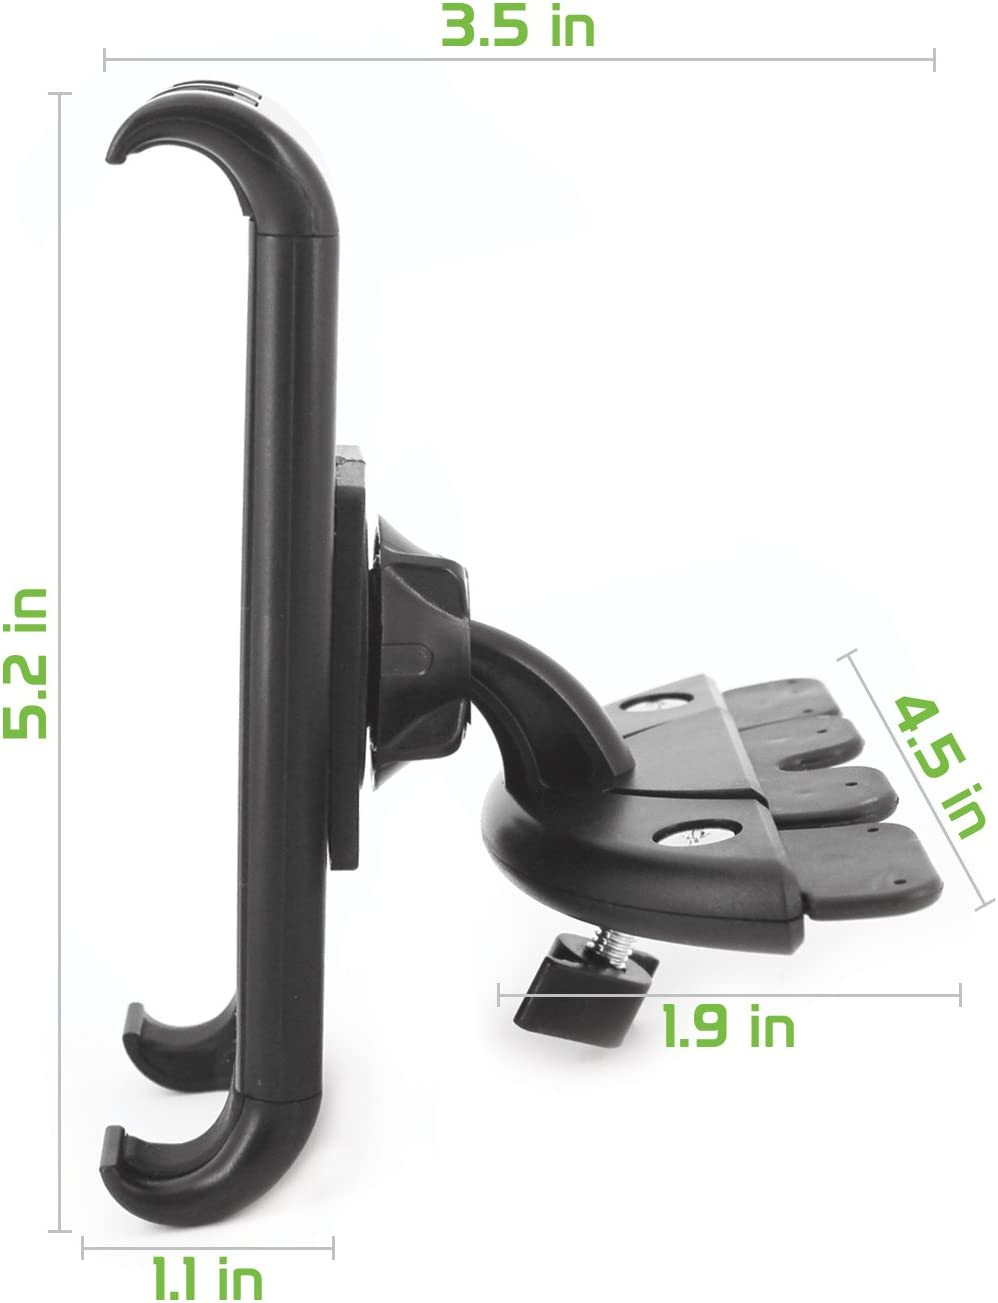 S10e S9 S9 Plus S8 S8 Active S7 S6 J7 V J5 J3 V J1 A6 Grand Prime On5 Express 3 Amp Prime 3 S6 Edge Cellet CD Slot Mount Car Phone Holder Cradle Compatible for Samsung Note 10 9 8 5 Galaxy S10 S10